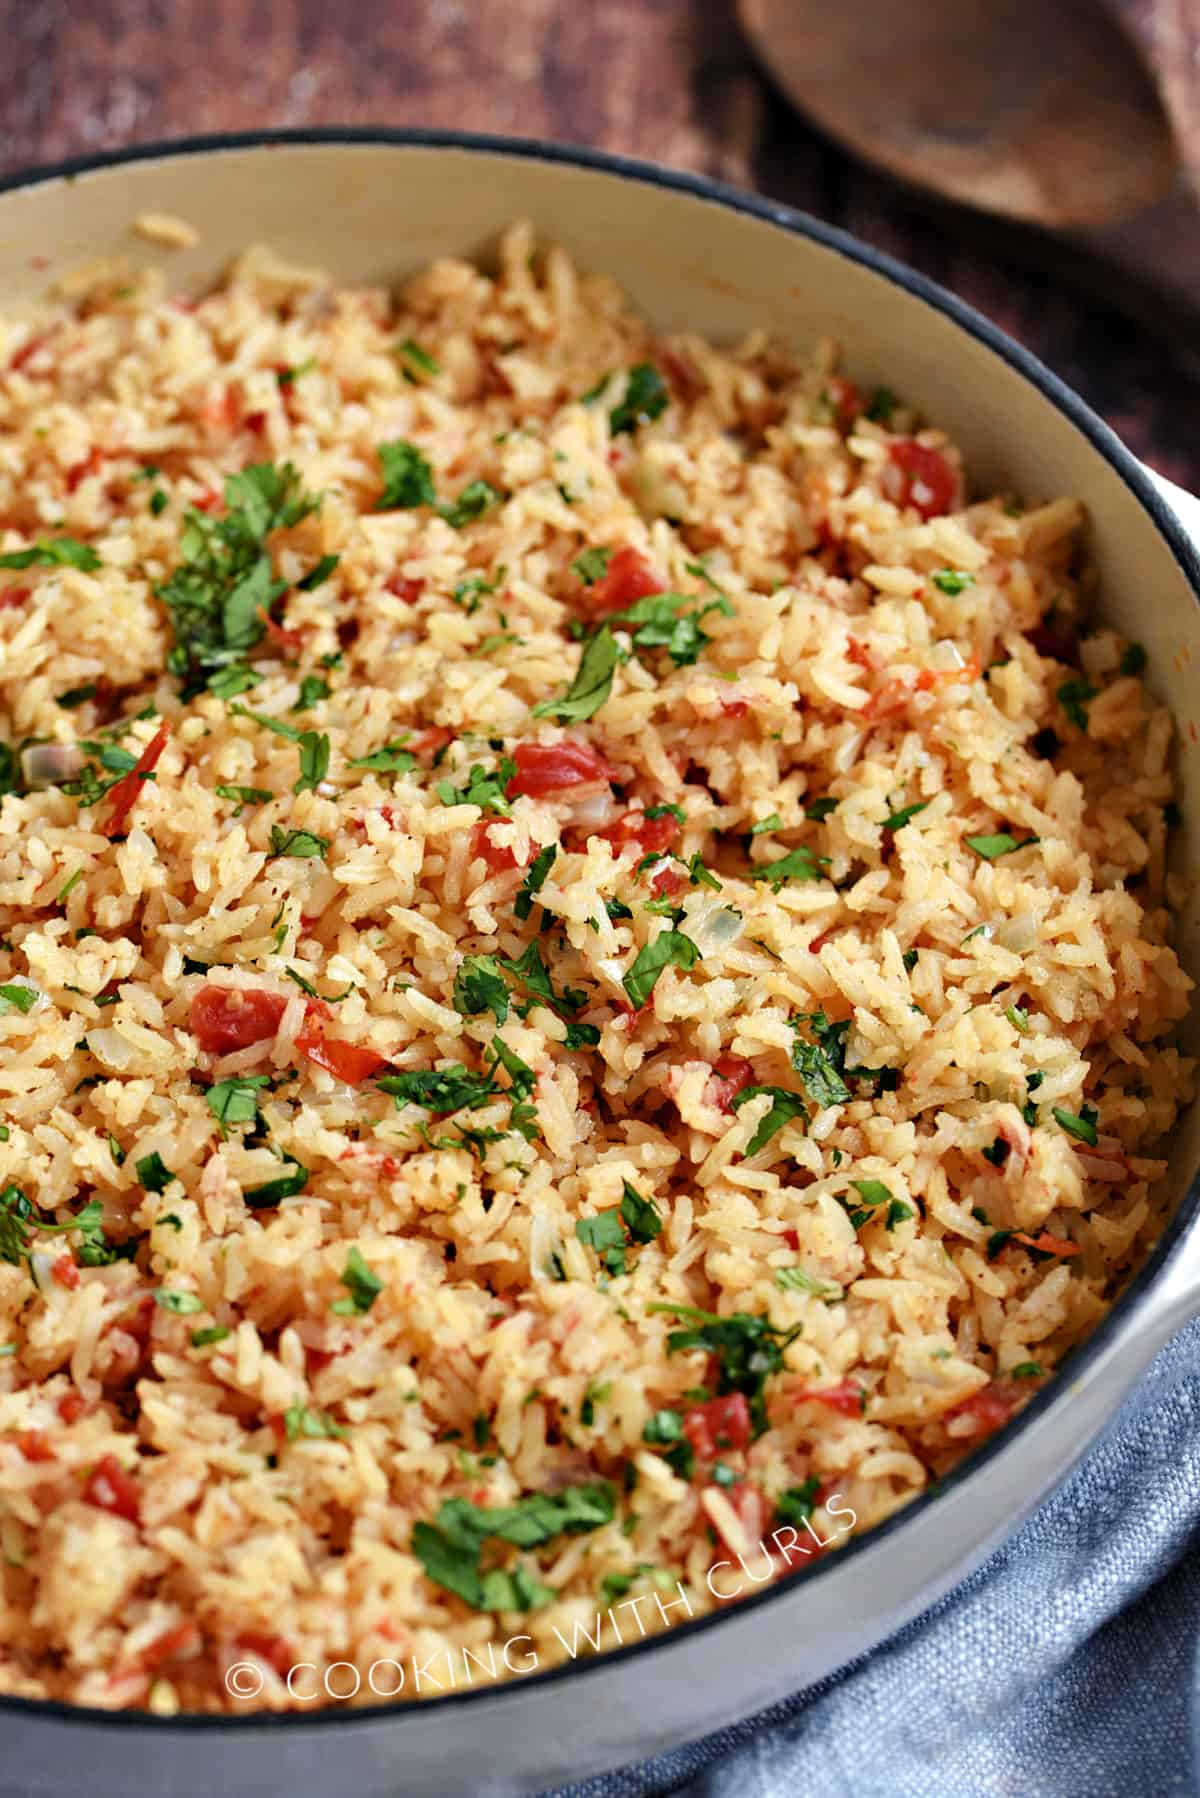 Rice, tomatoes, onions and cilantro in a large, white skillet.